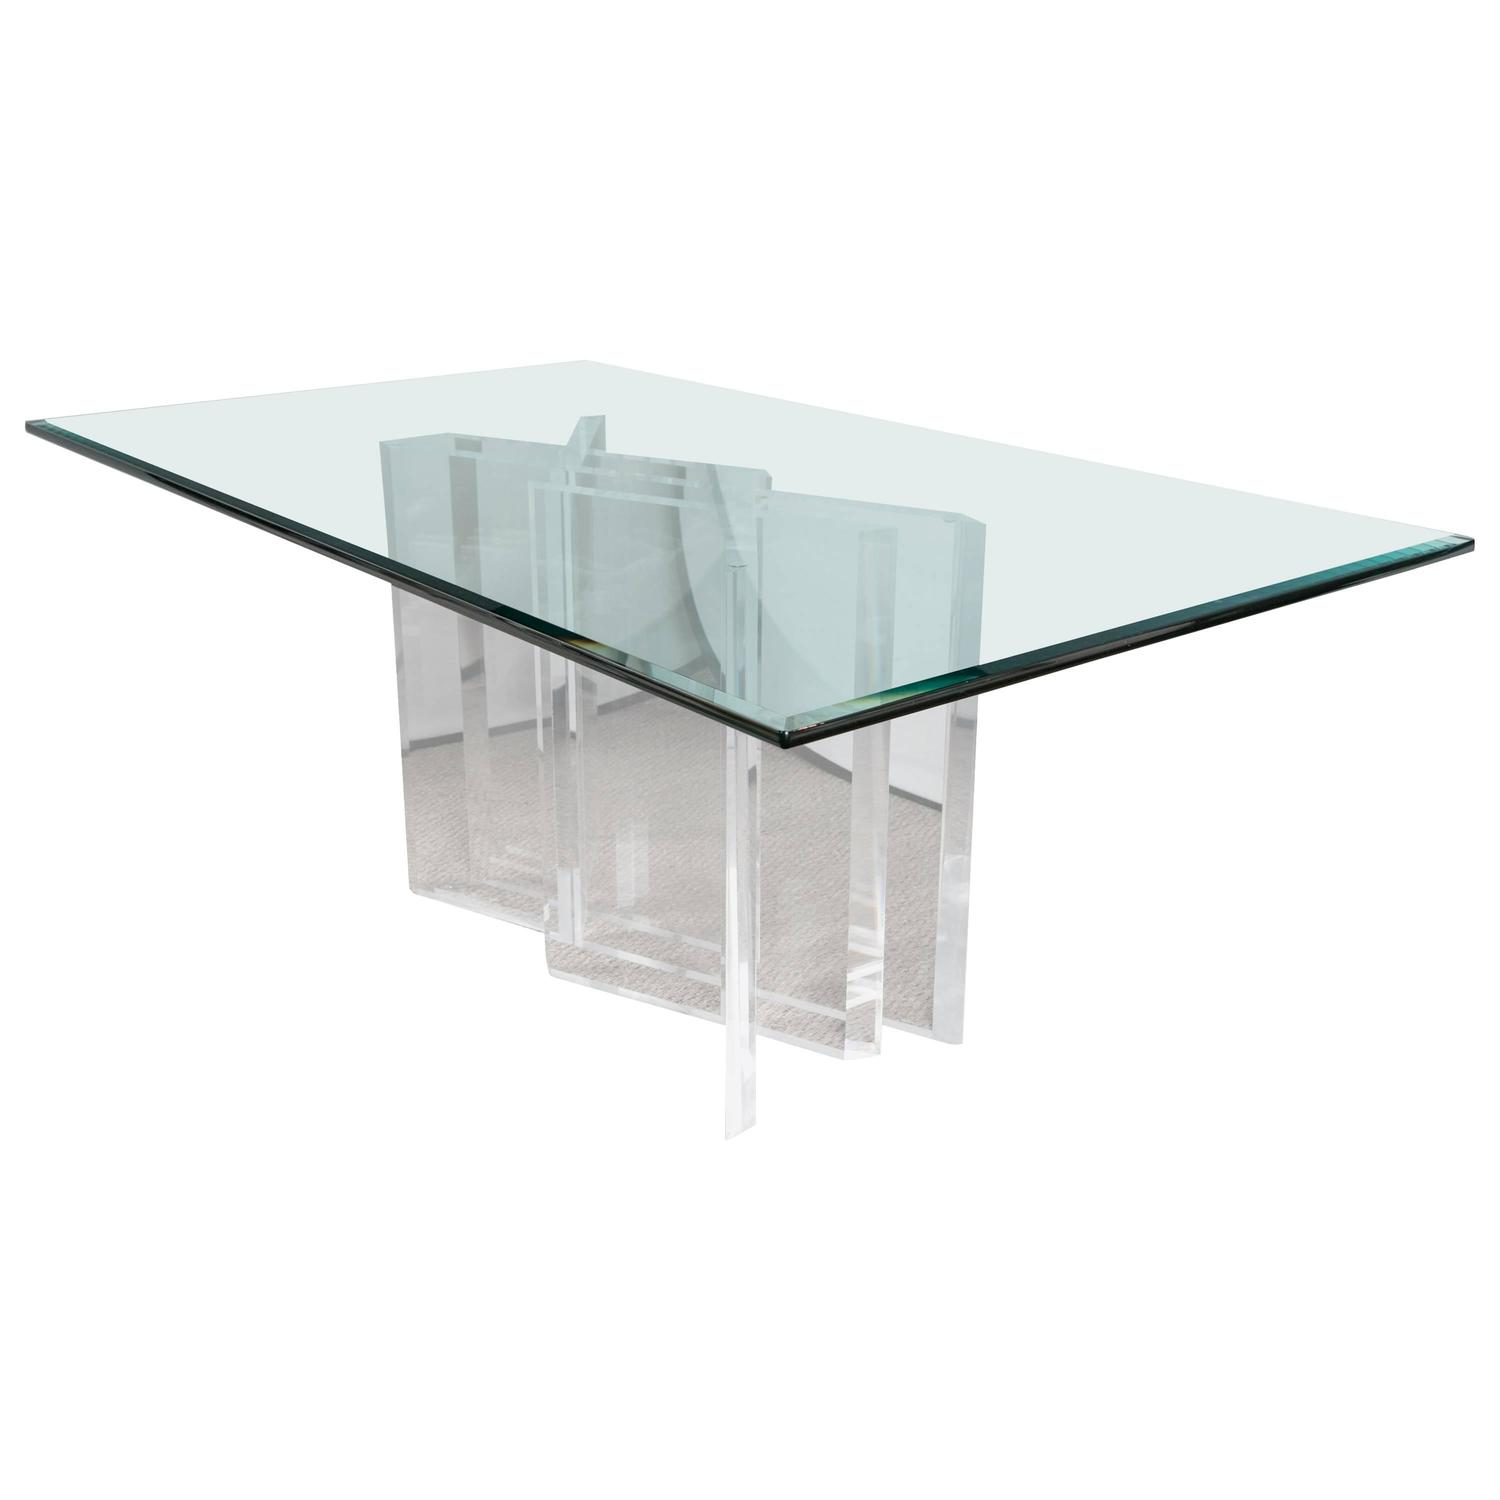 "Stella Prisma"" Lucite and Glass Dining Table For Sale at 1stdibs"